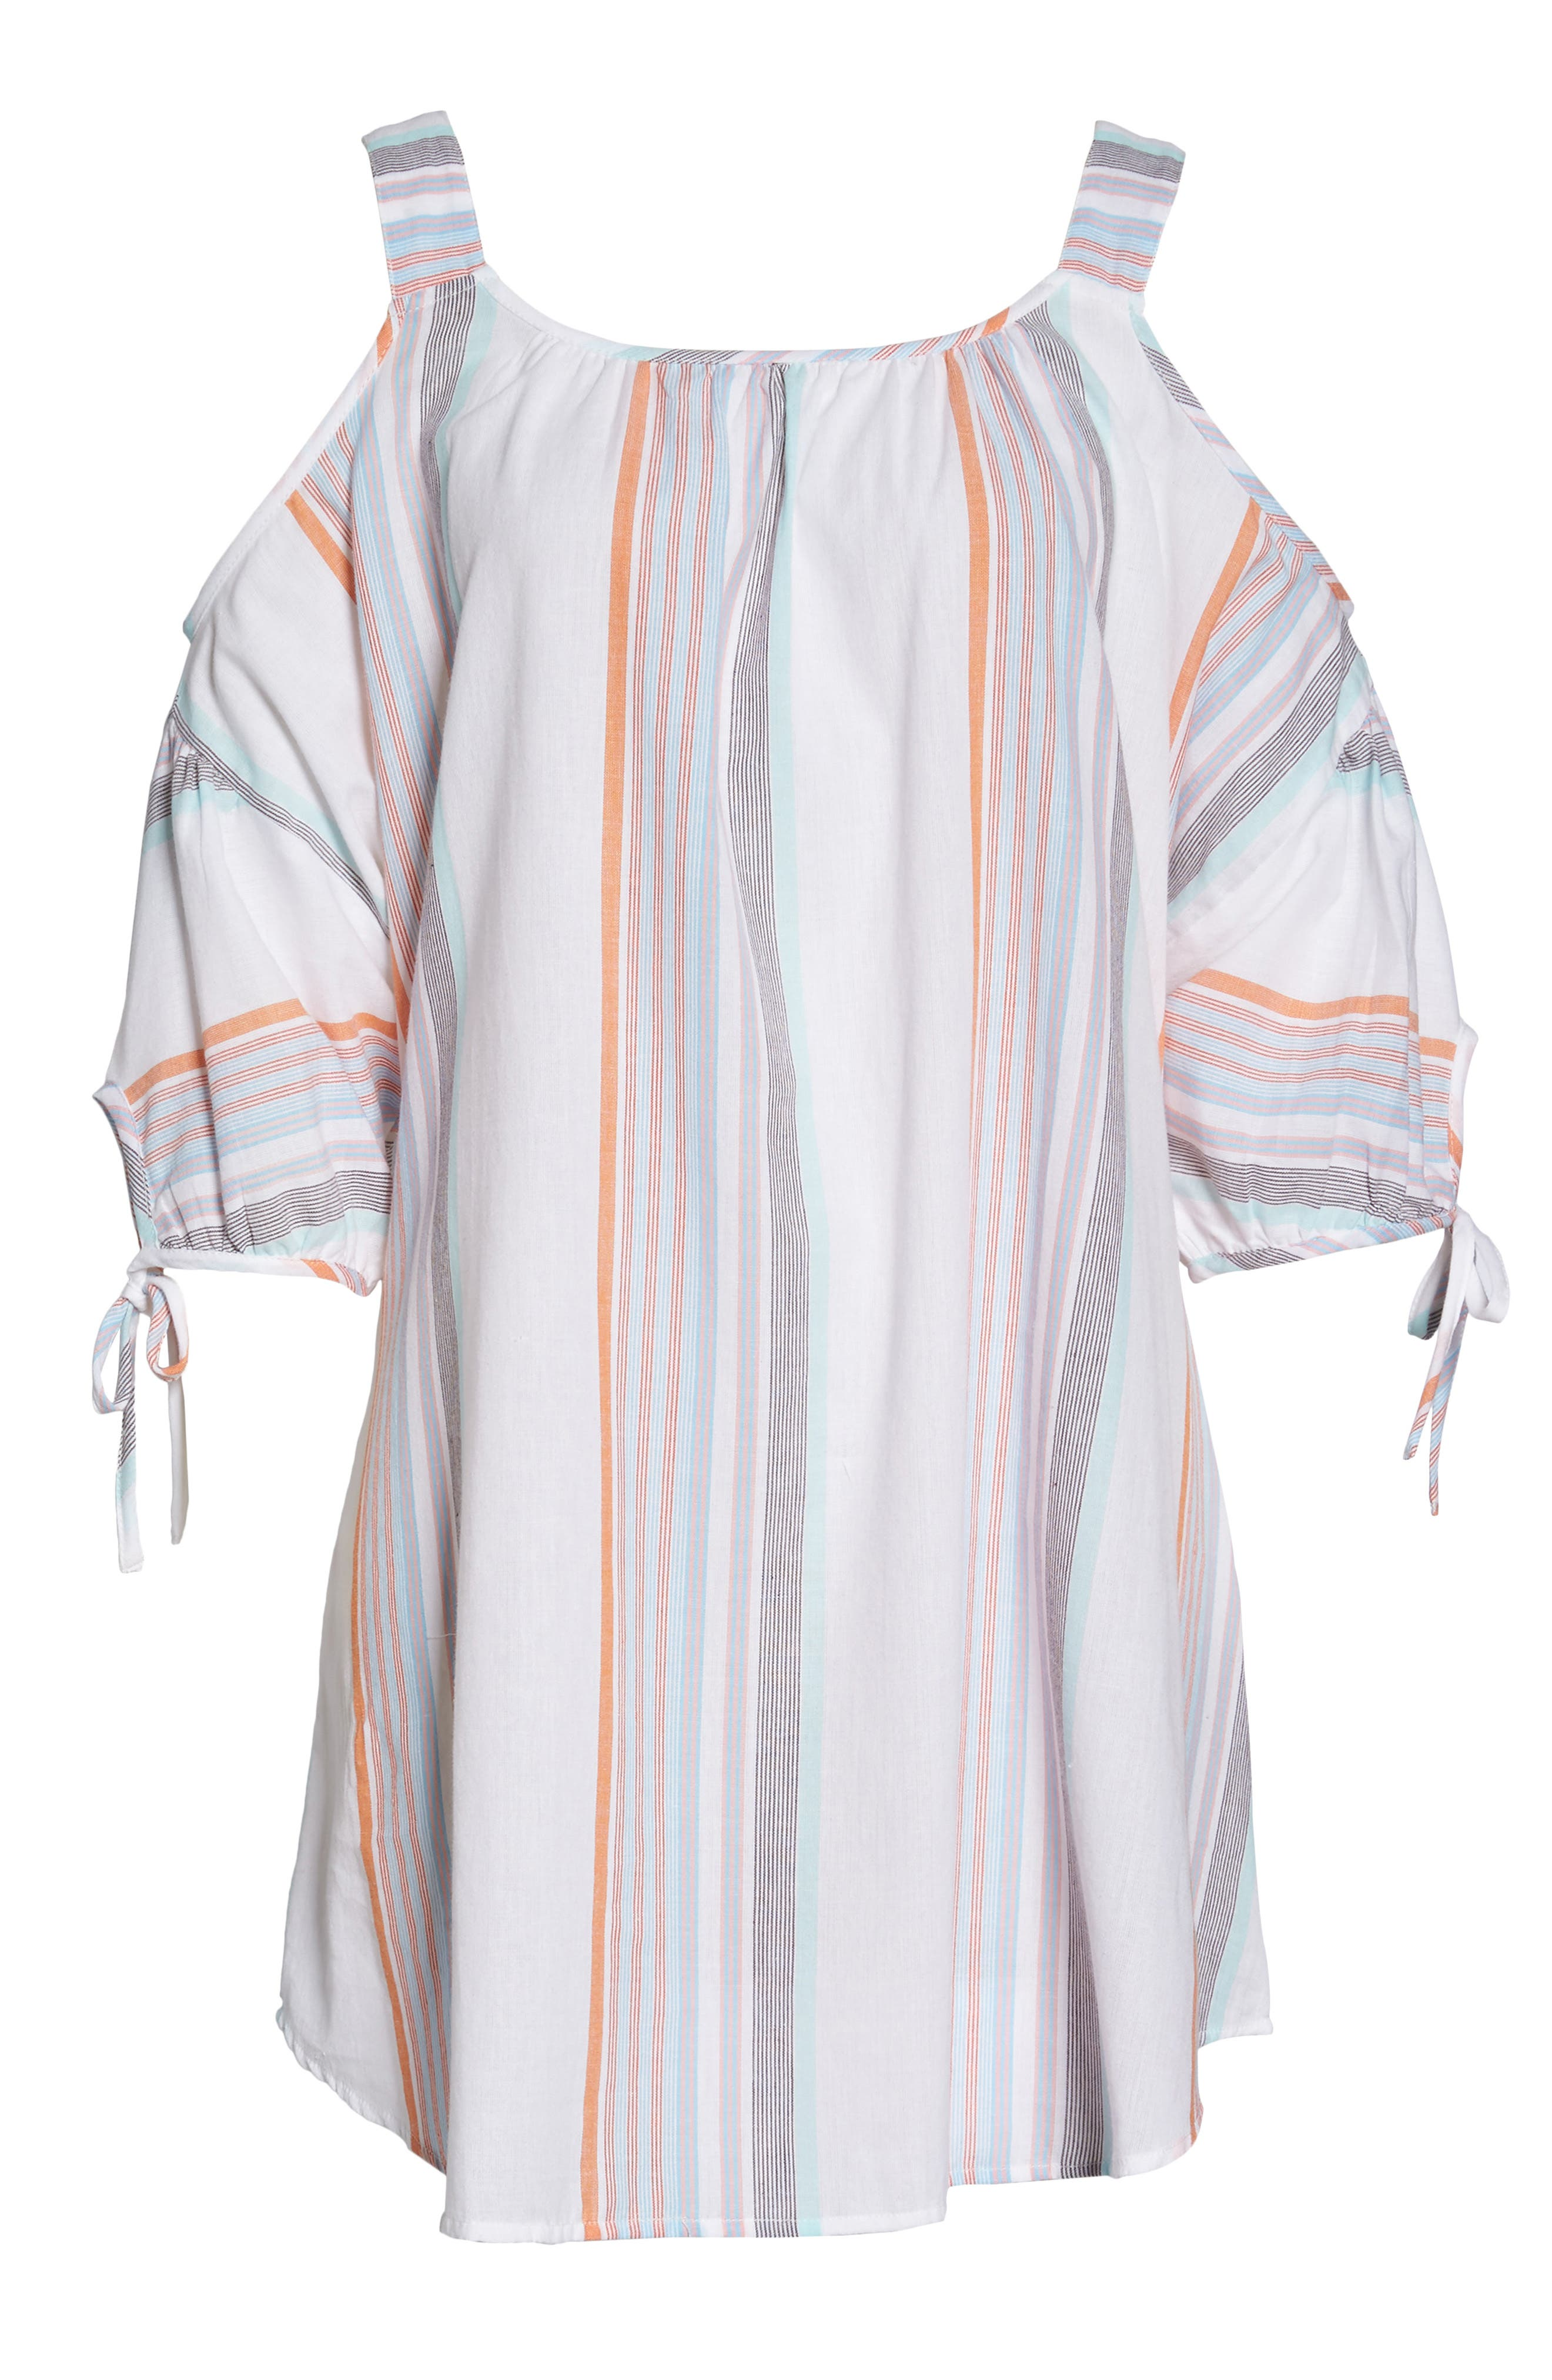 Sunset Stripe Cold Shoulder Cover-Up Dress,                             Alternate thumbnail 6, color,                             White